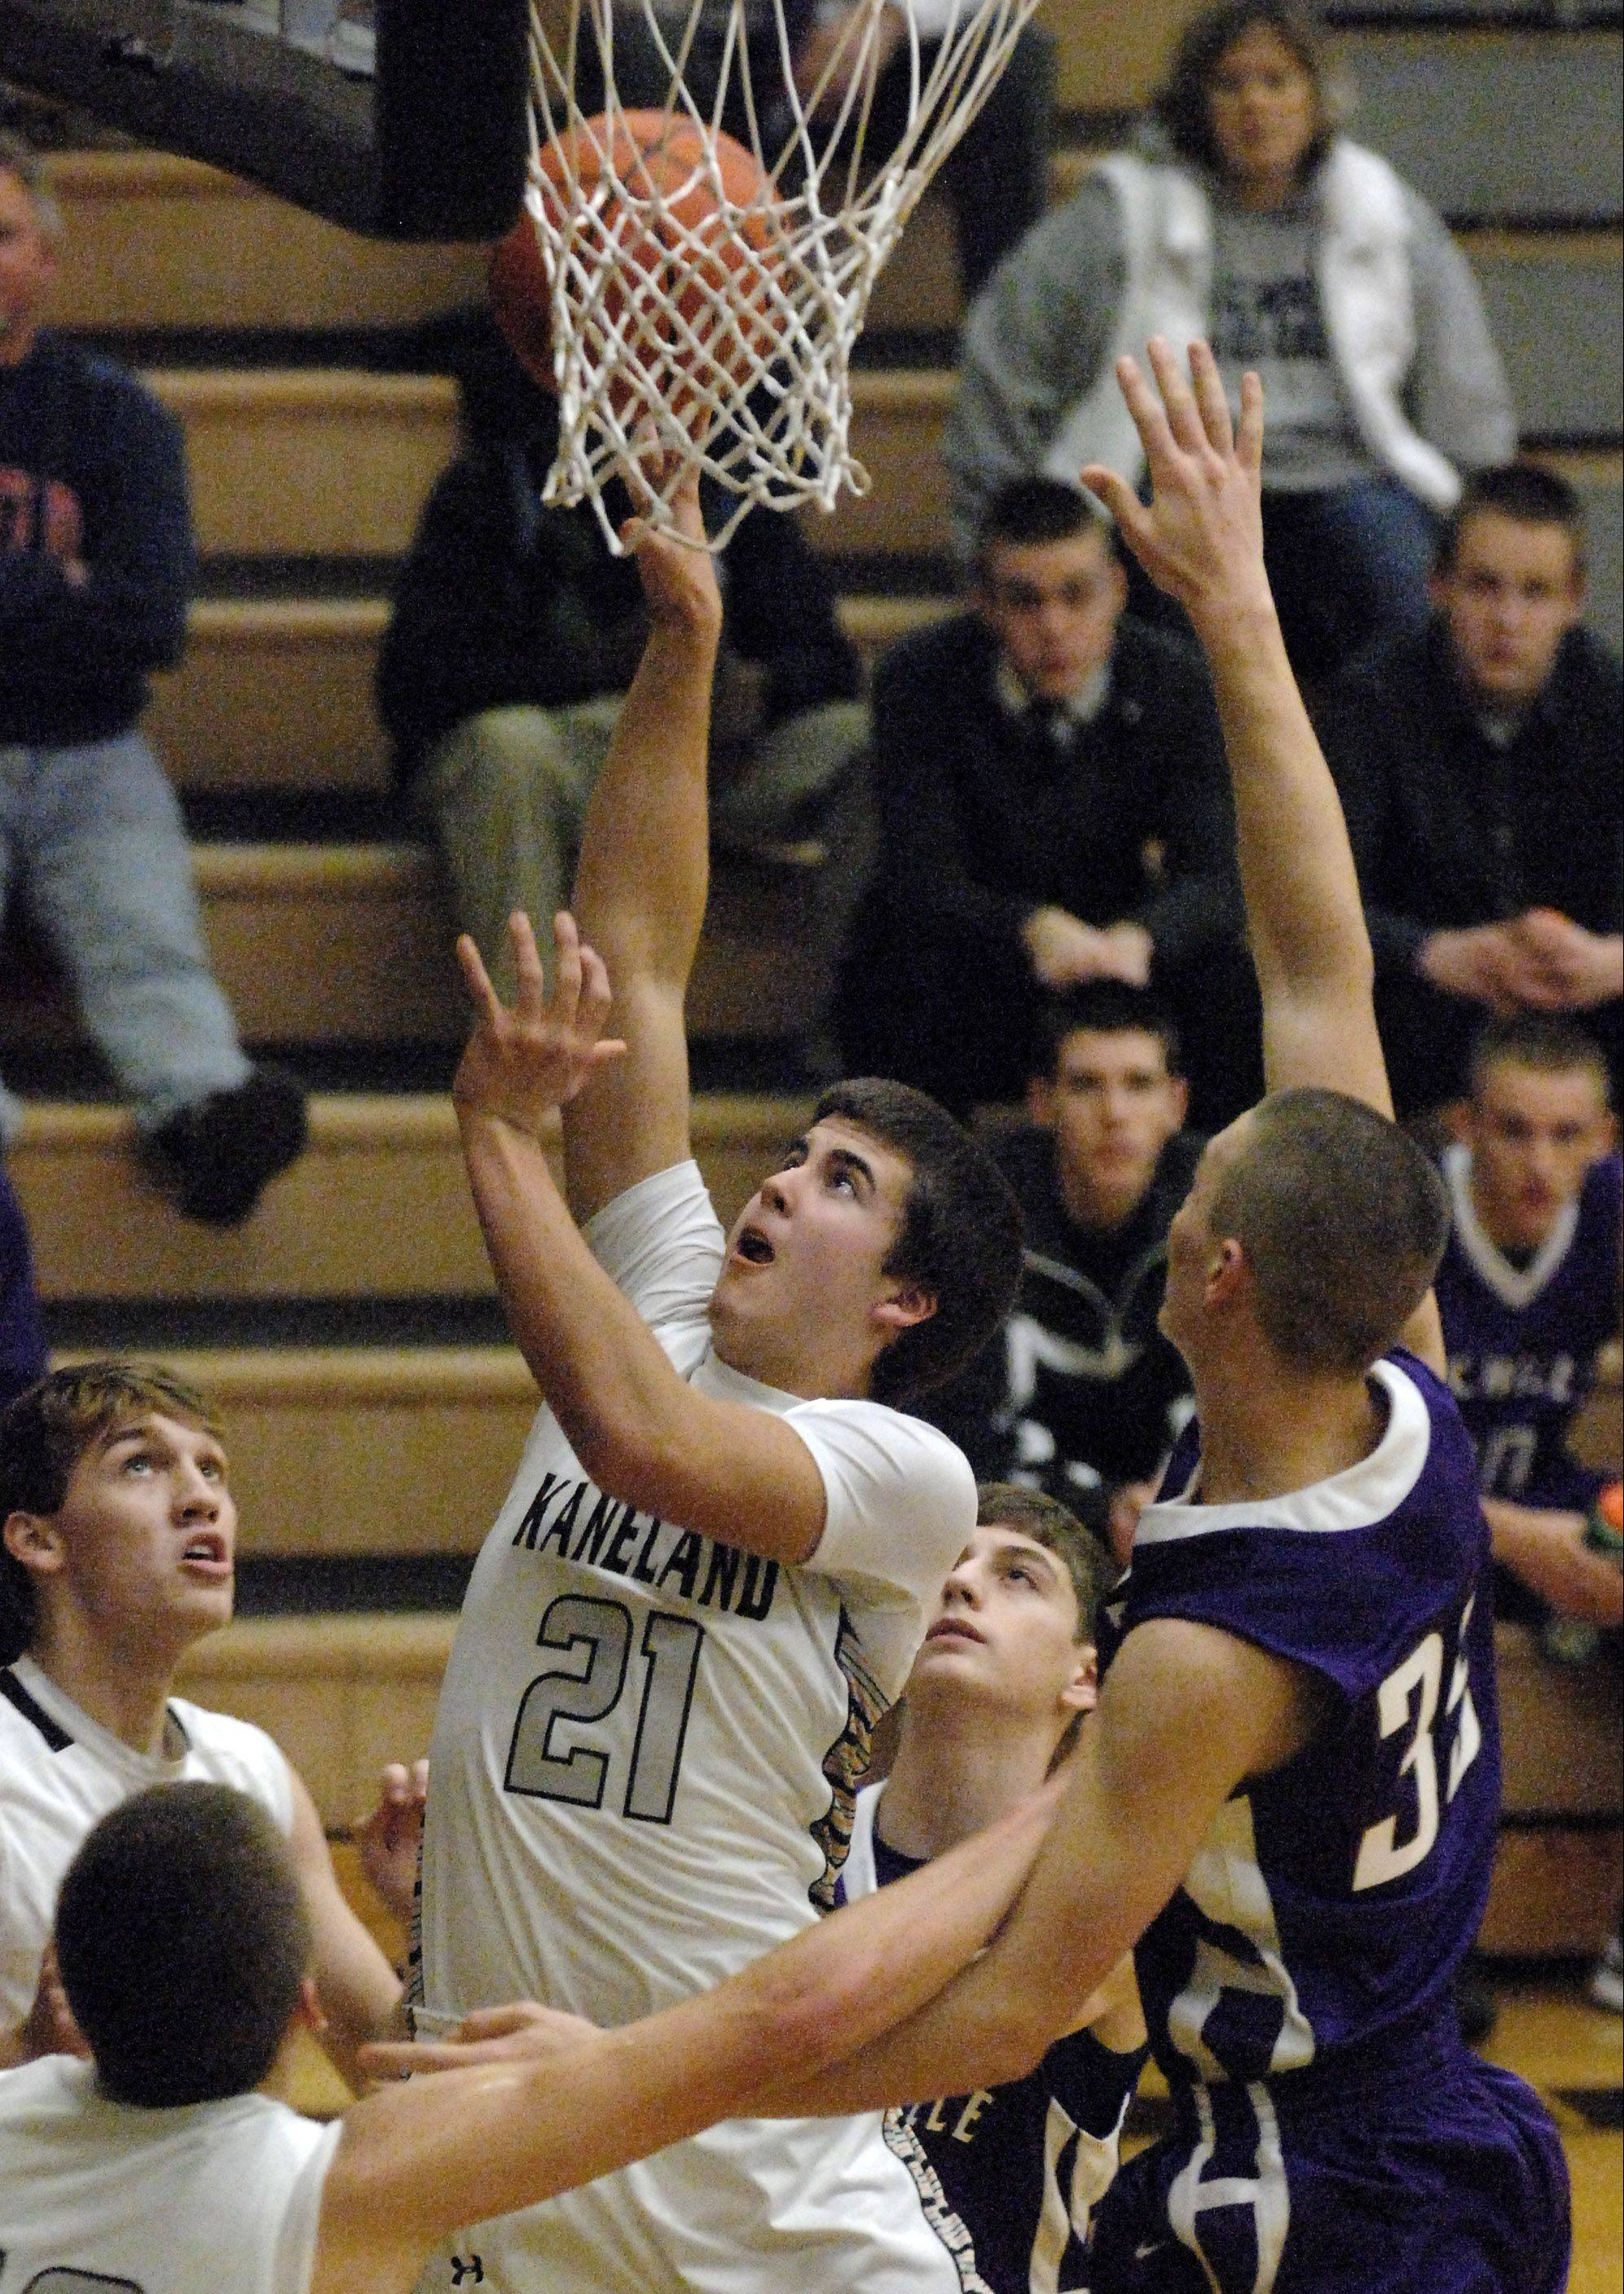 Kaneland�s Tom Van Bogaert puts up a shot in the lane against Rochelle during Thursday�s game in Maple Park.